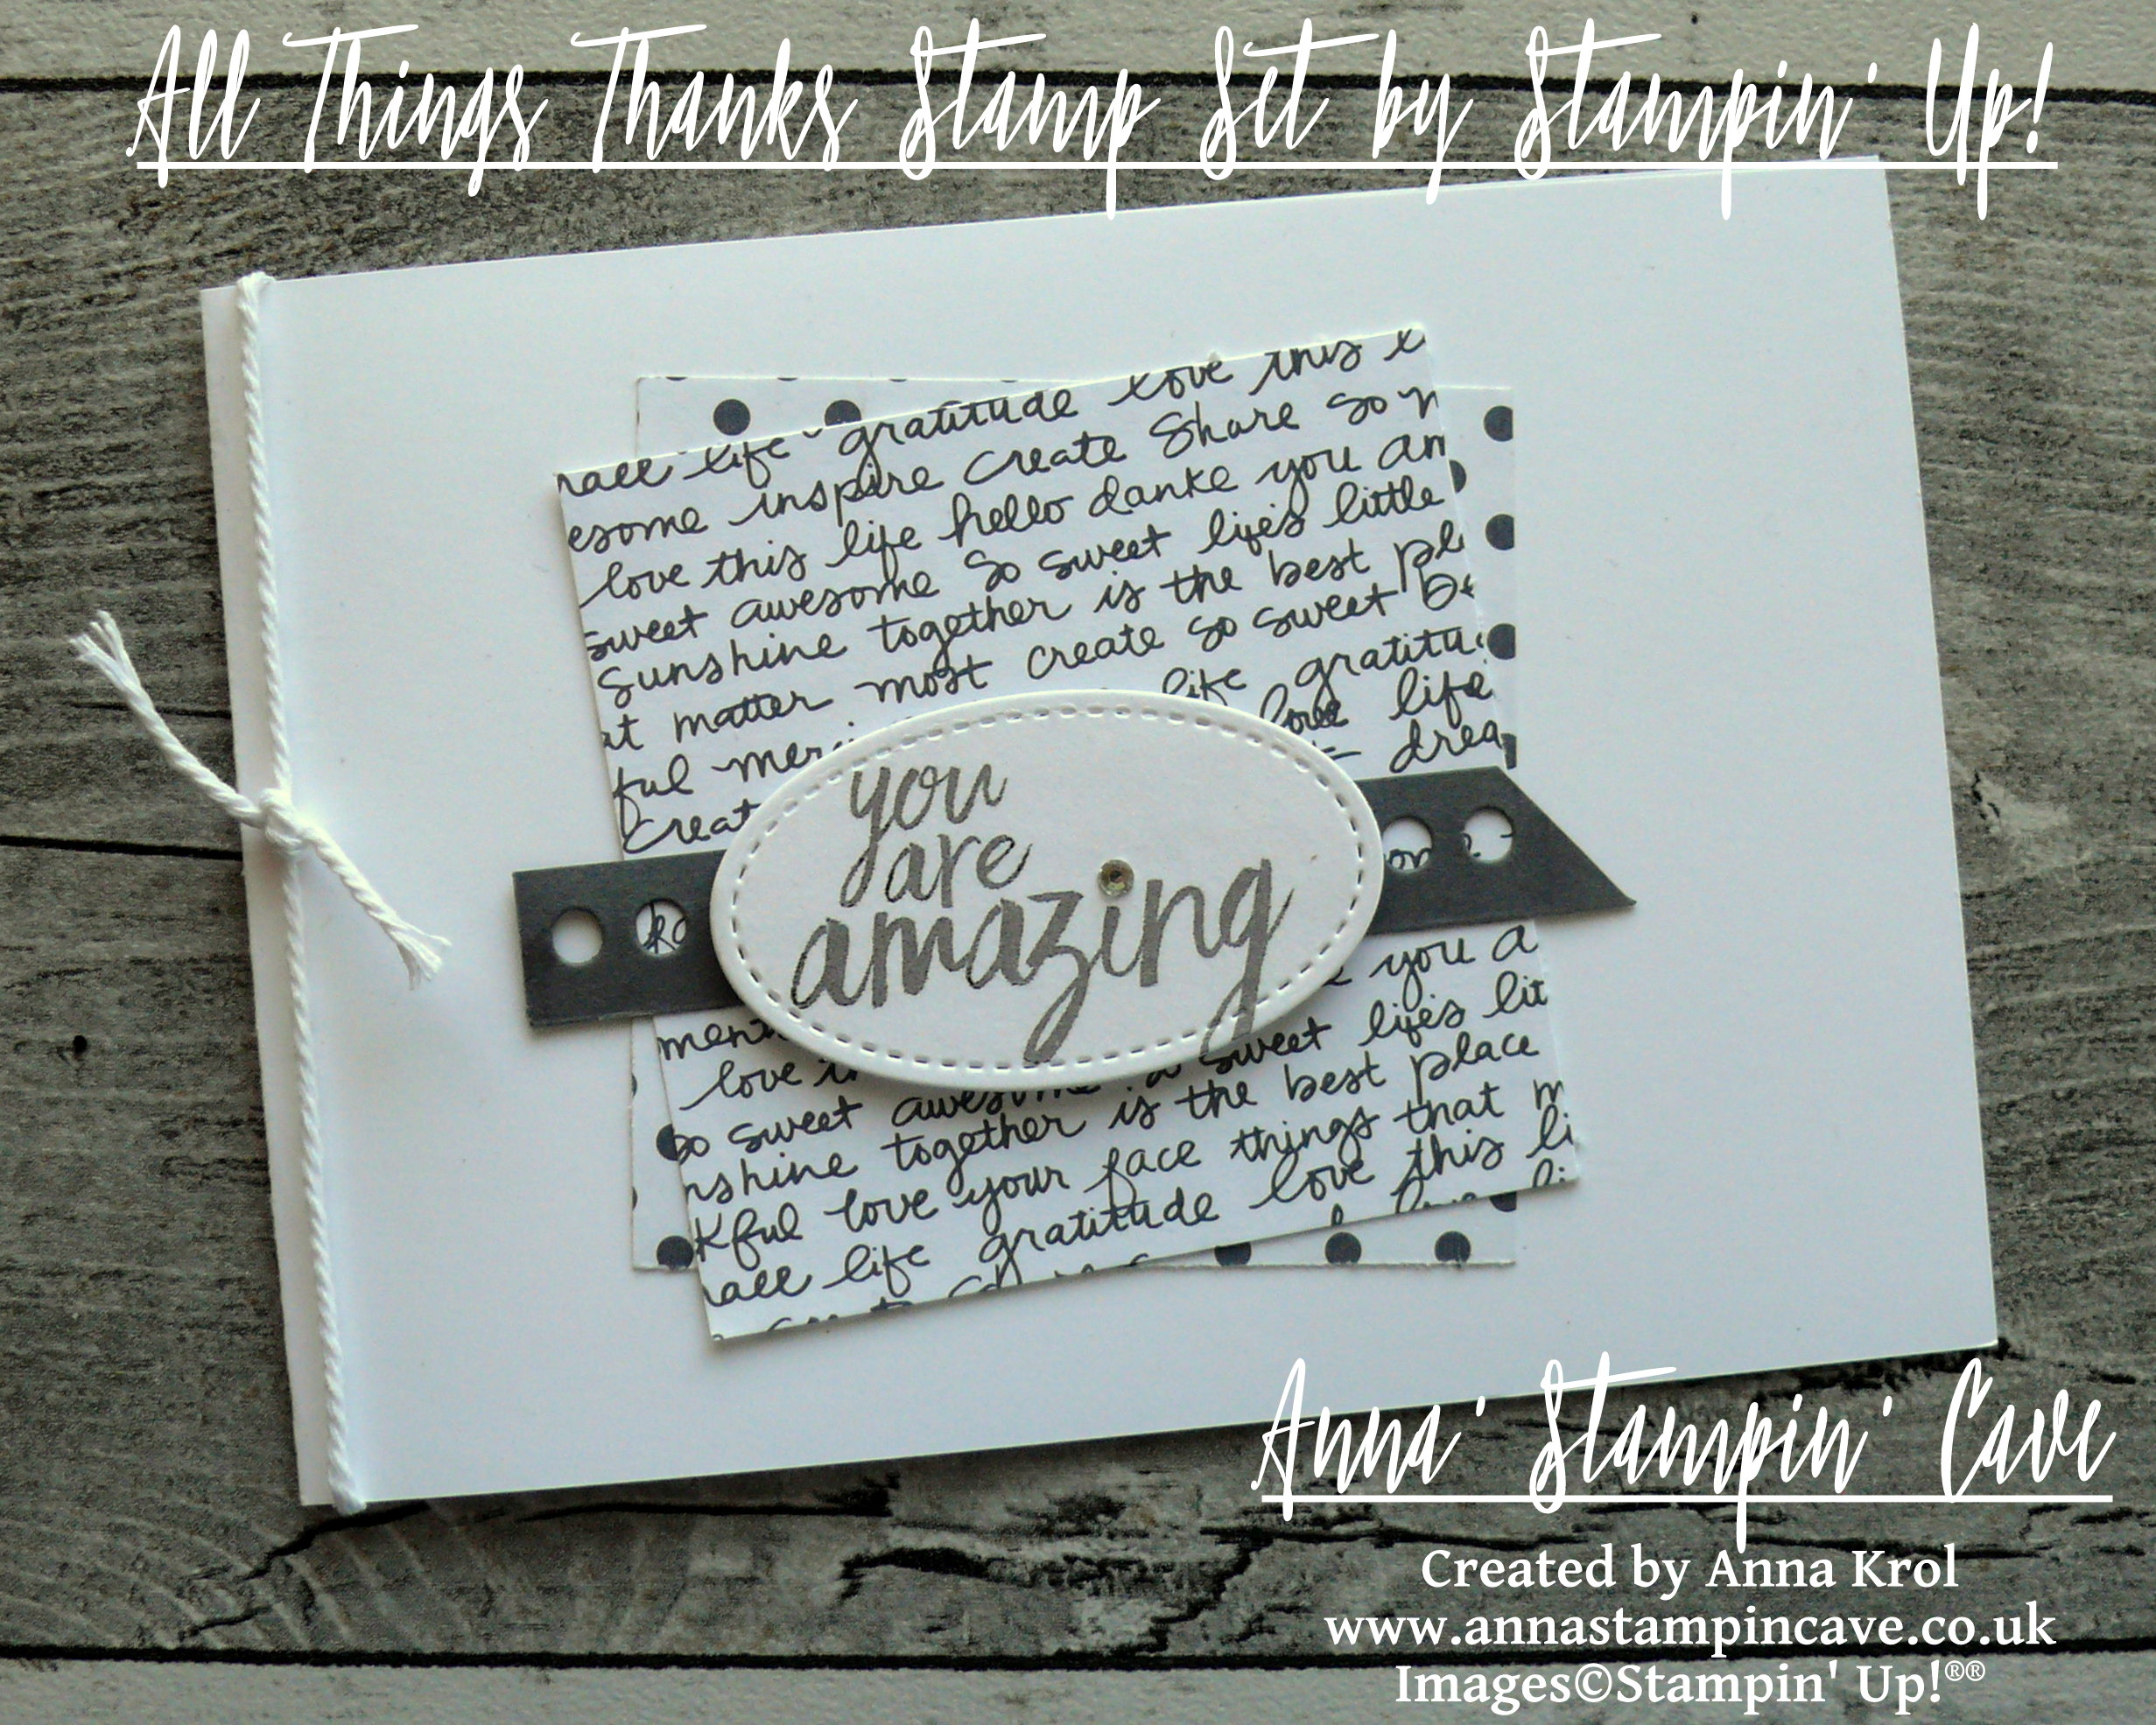 Anna' Stampin' Cave - Stampin' Up! All Things Thanks Stamp Set Monochromatic CAS Card You Are Amazing.JPG